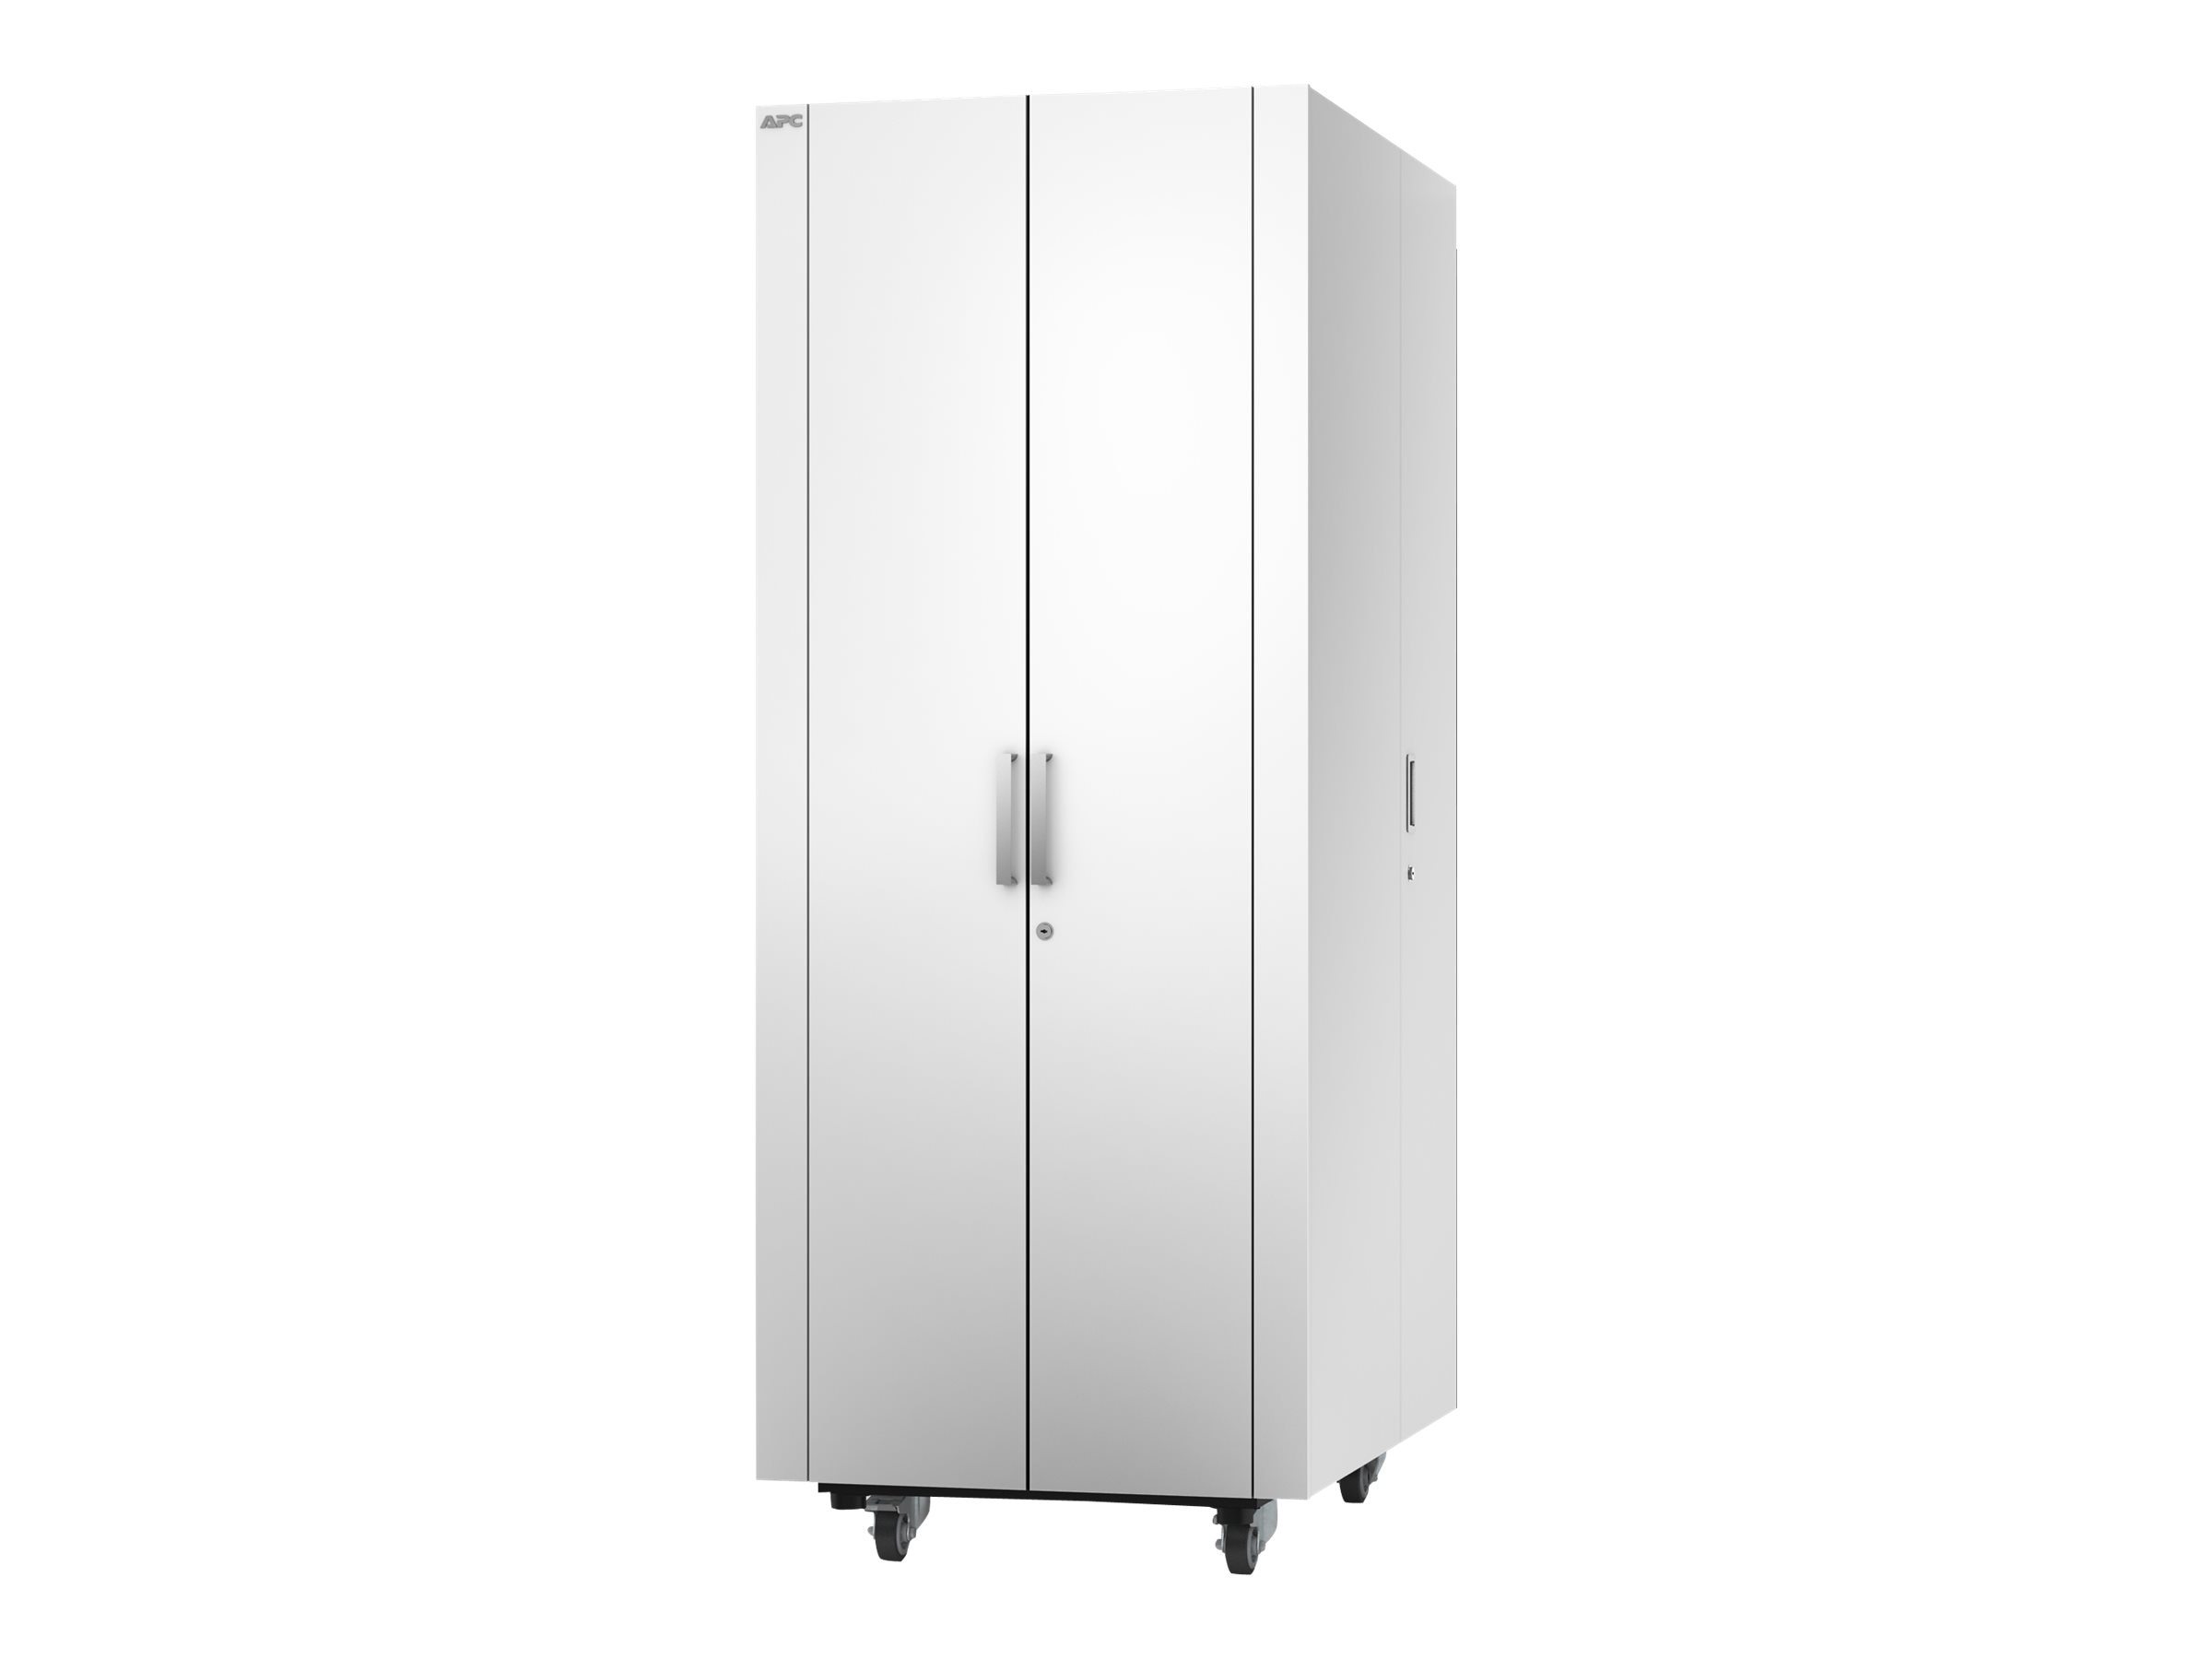 APC Netshelter CX 38U x 750mm x 1130mm Deep Enclosure, White Finish, AR4038X432